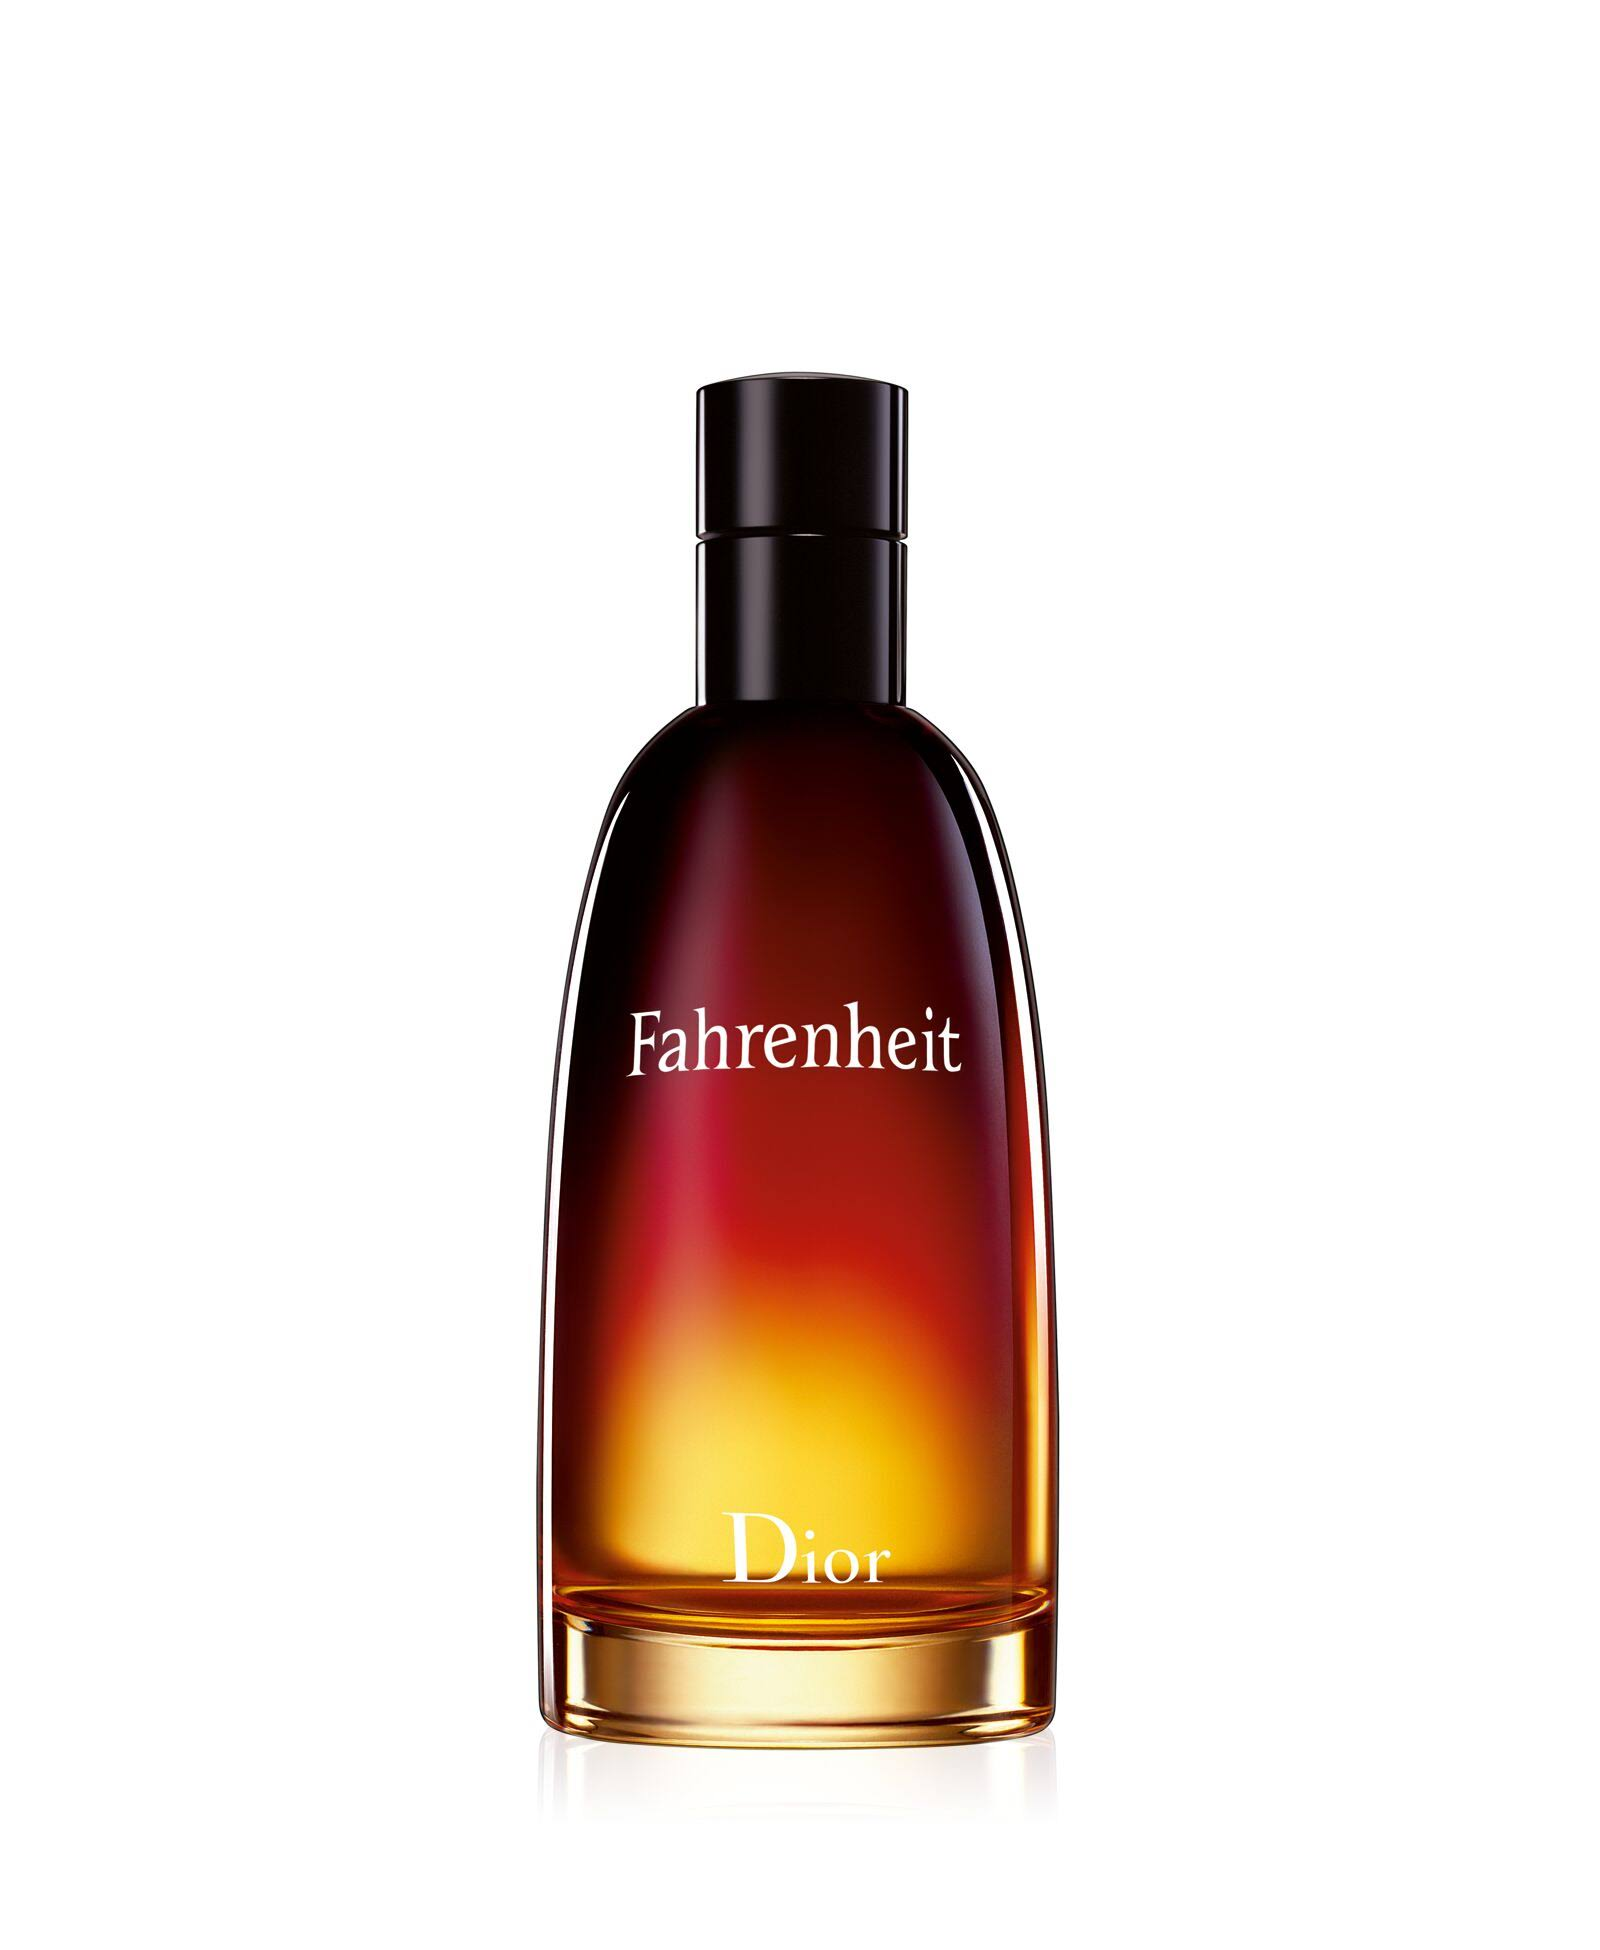 Christian Dior Fahrenheit Eau de Toilette Spray, Men's - 3.4 fl oz bottle